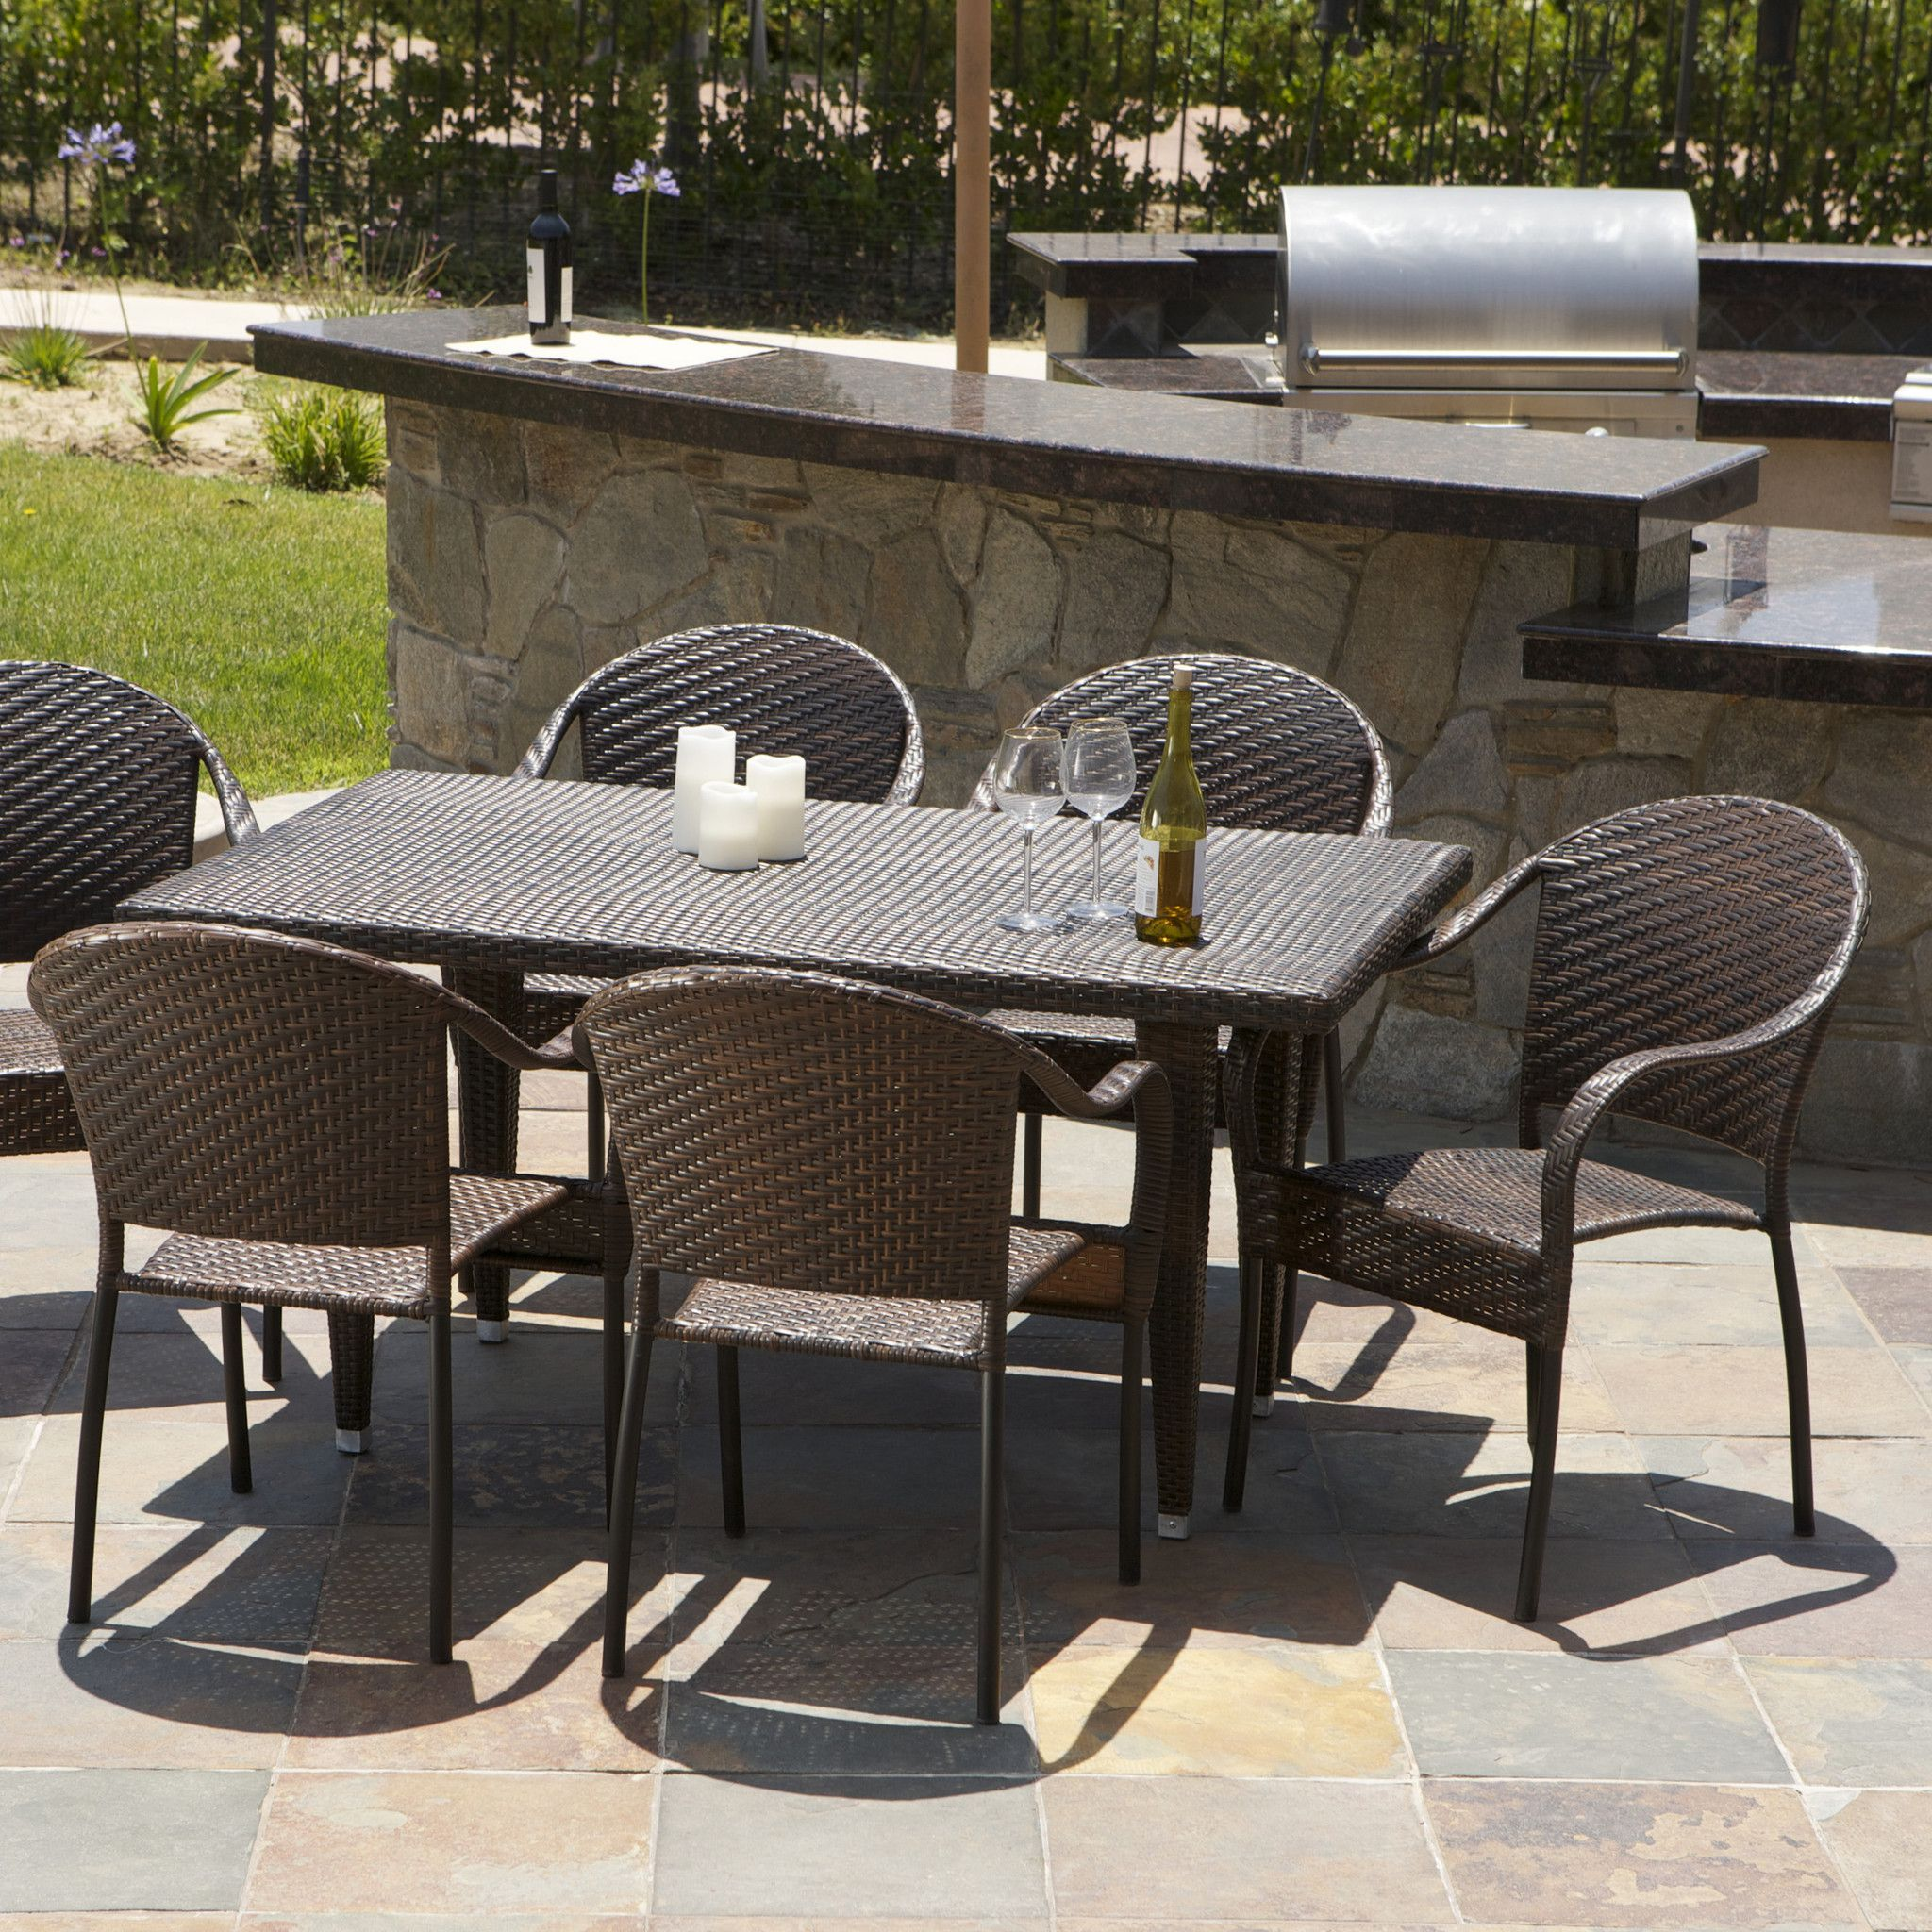 Livingston 7 Piece Wicker Outdoor Dining Set The Livingston 7 Pieces  Outdoor Wicker Dining Set